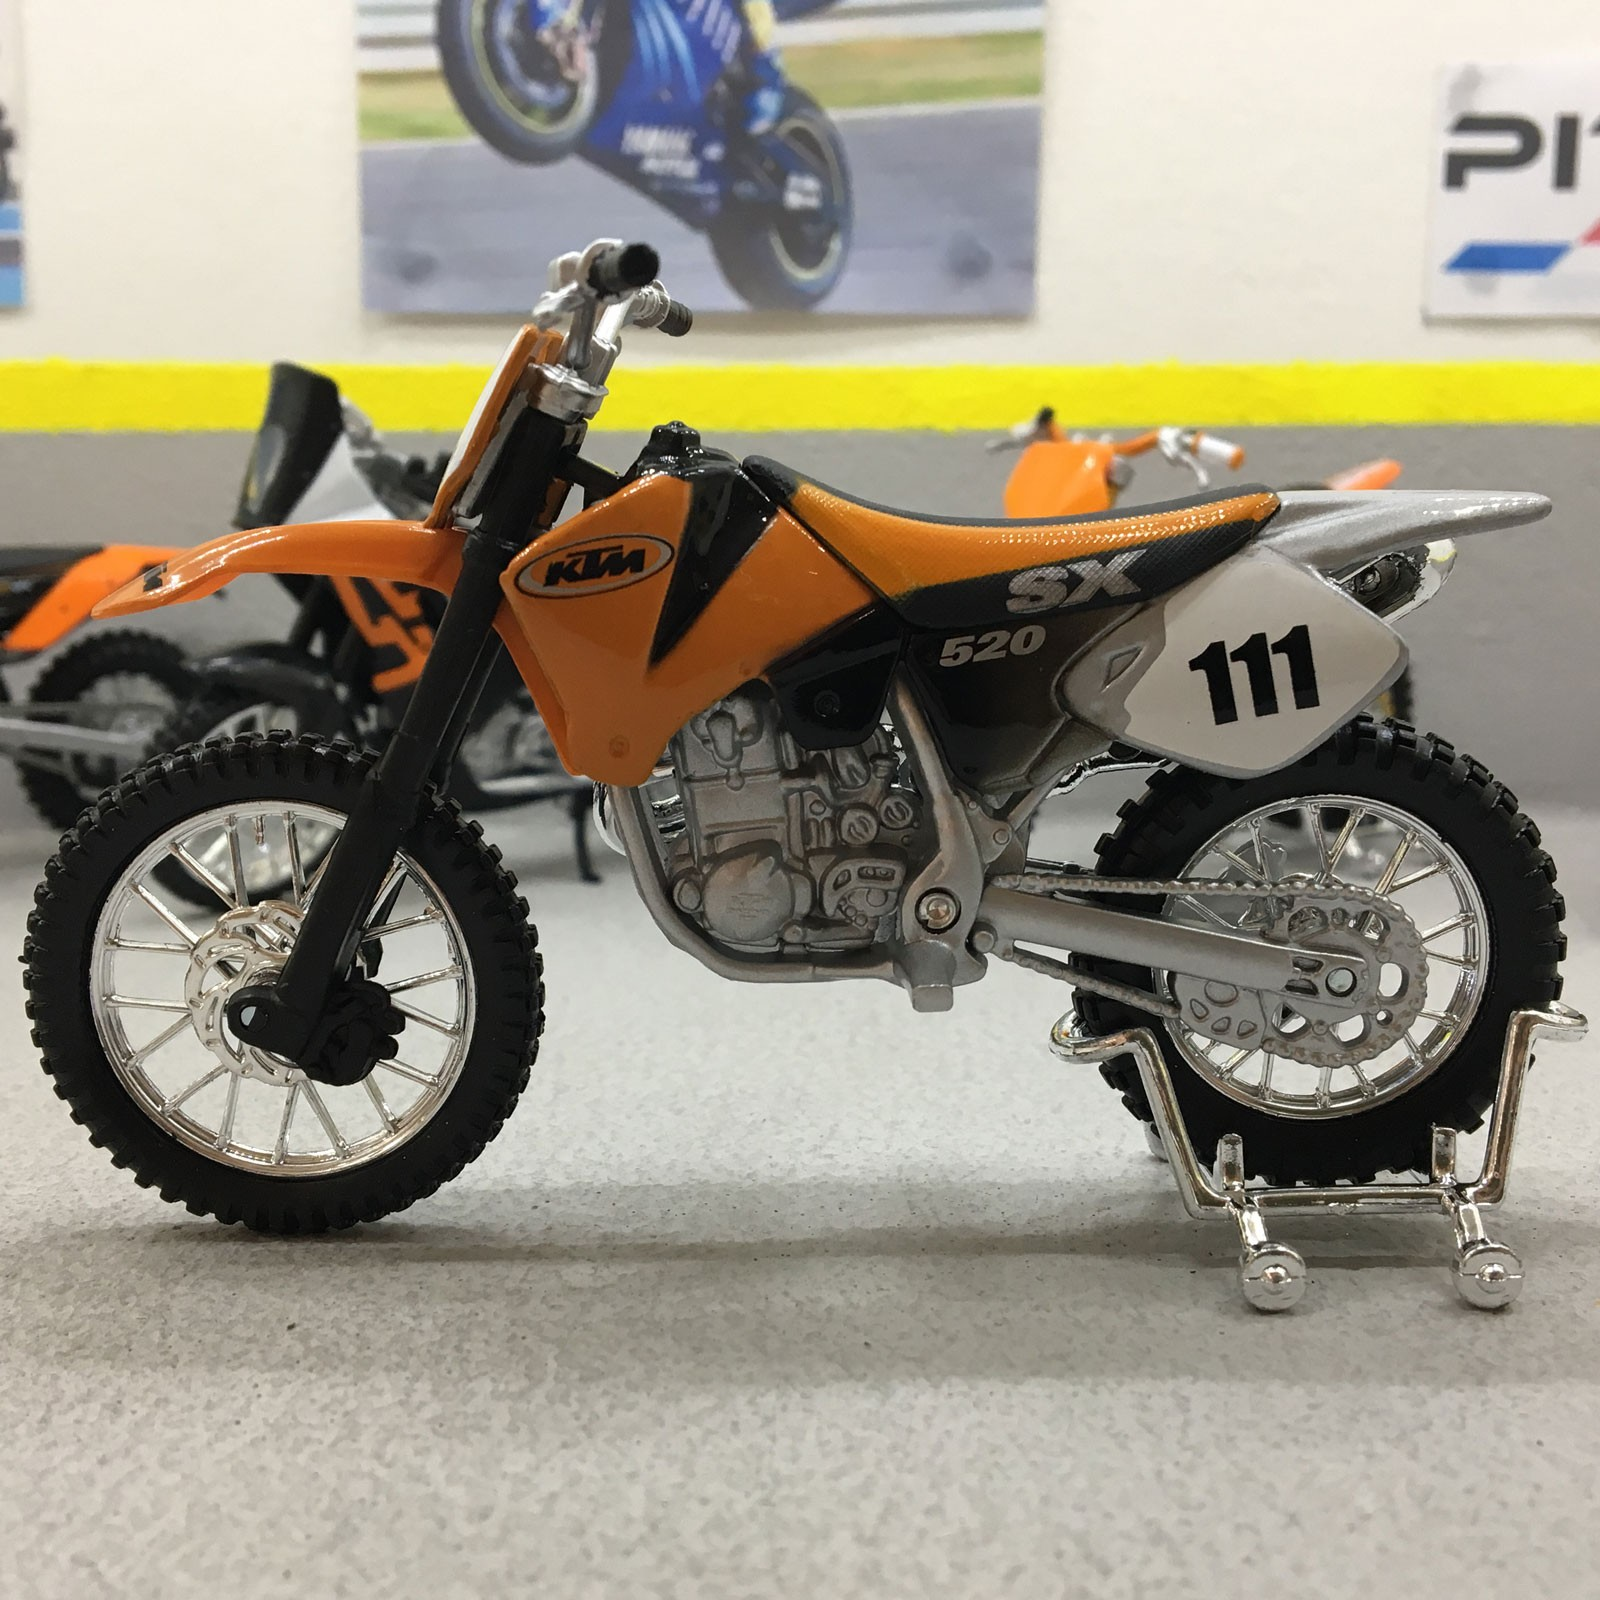 hight resolution of details about ktm 520 sx 1 18 scale die cast model motorcycle bike